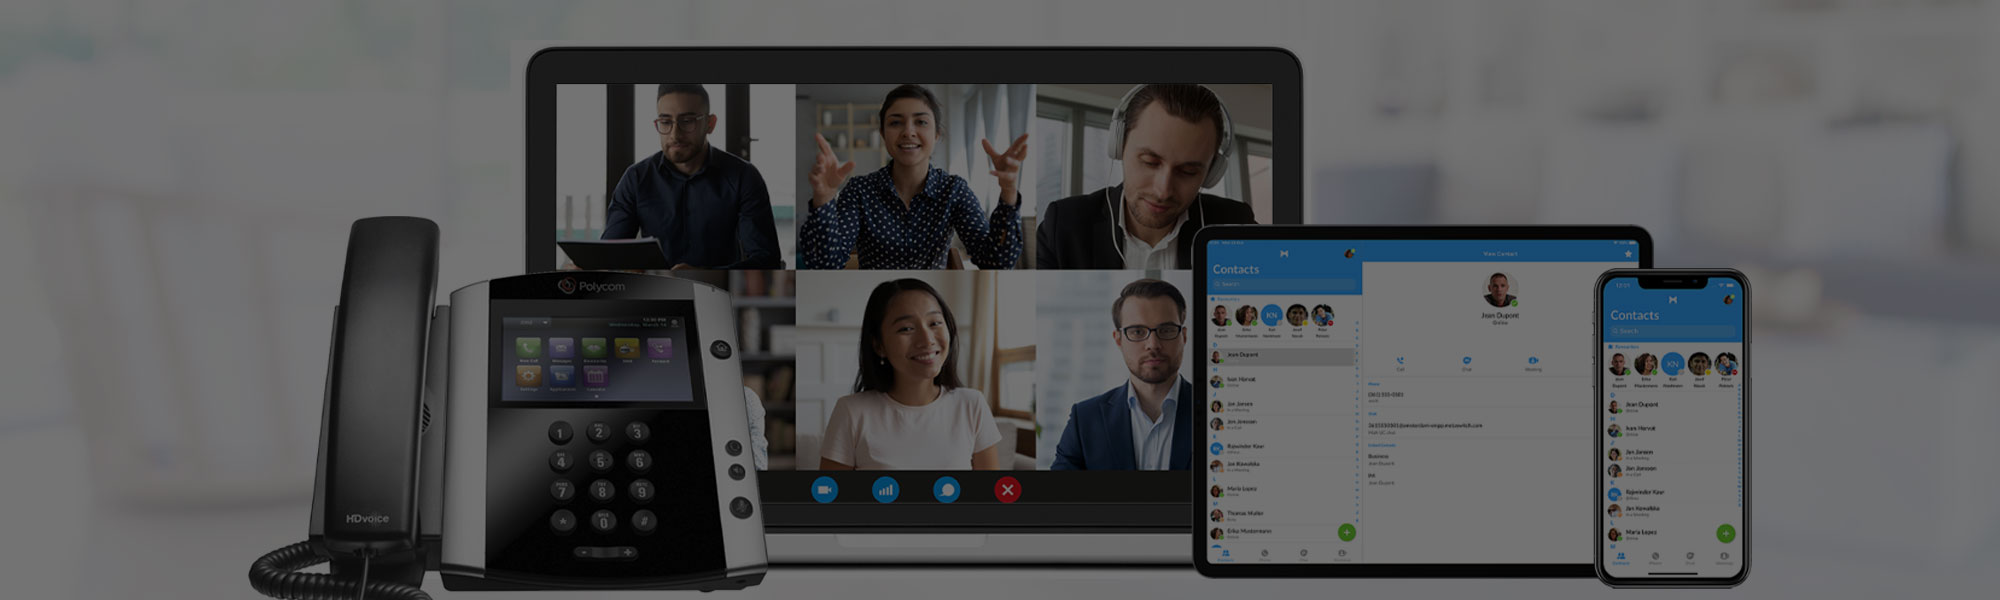 Unified Voice Hosted PBX